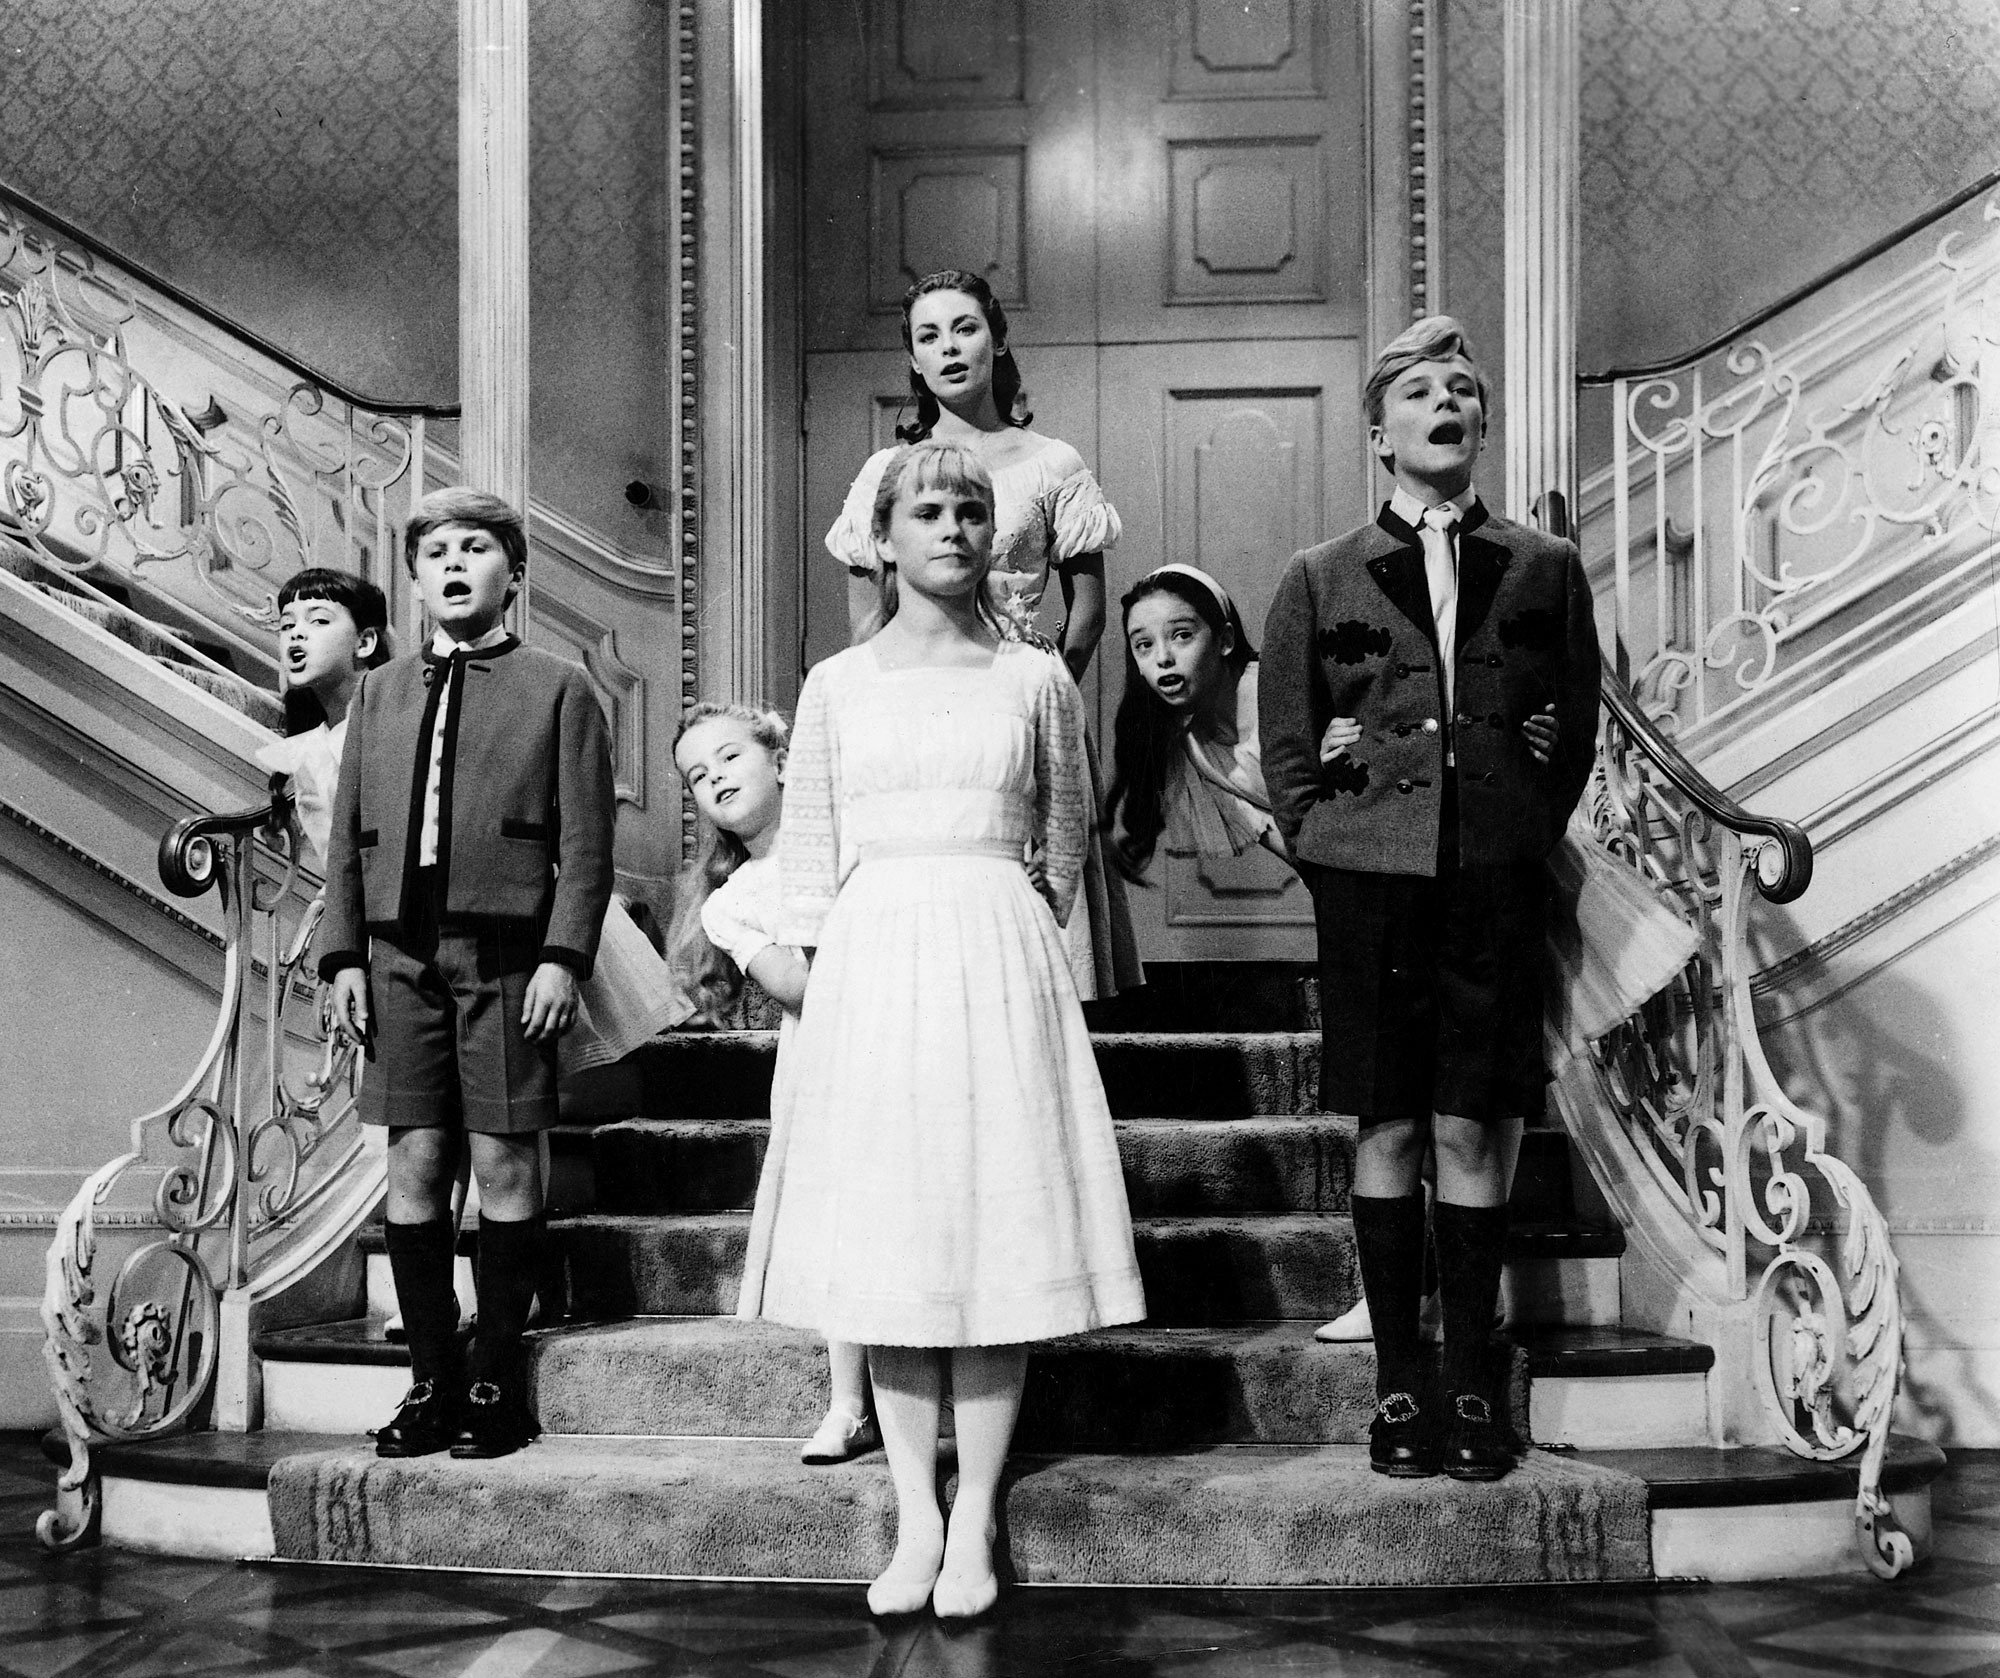 Sound of Music Actress Heather Menzies-Urich Dies at 68